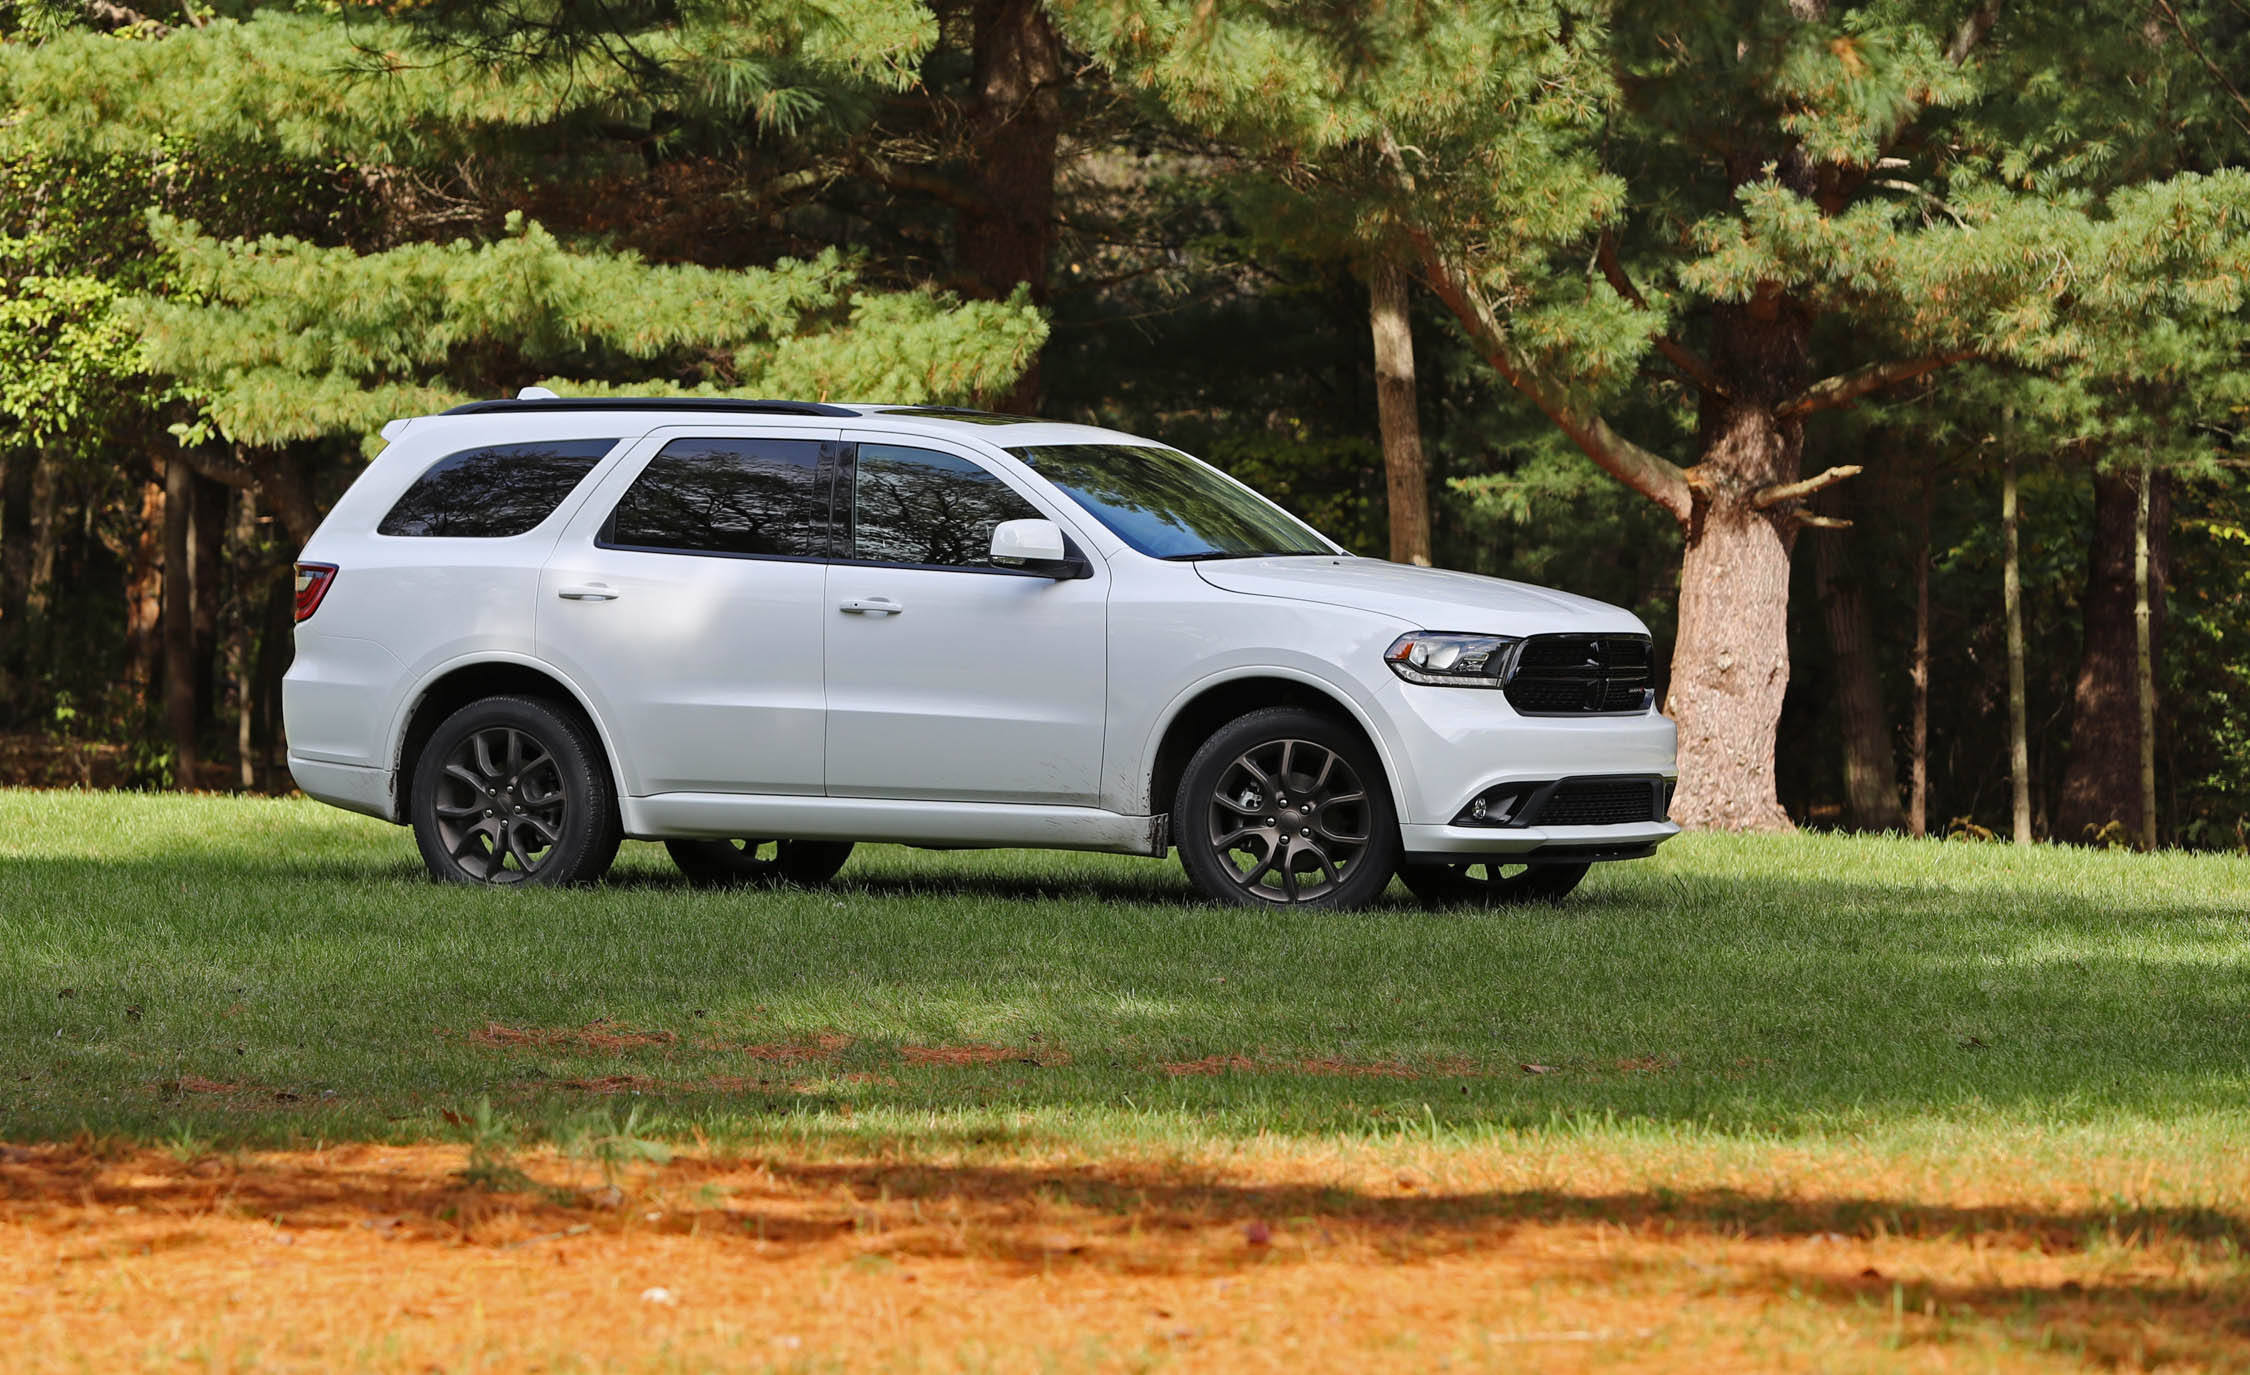 2017 Dodge Durango GT AWD (Photo 6 of 12)